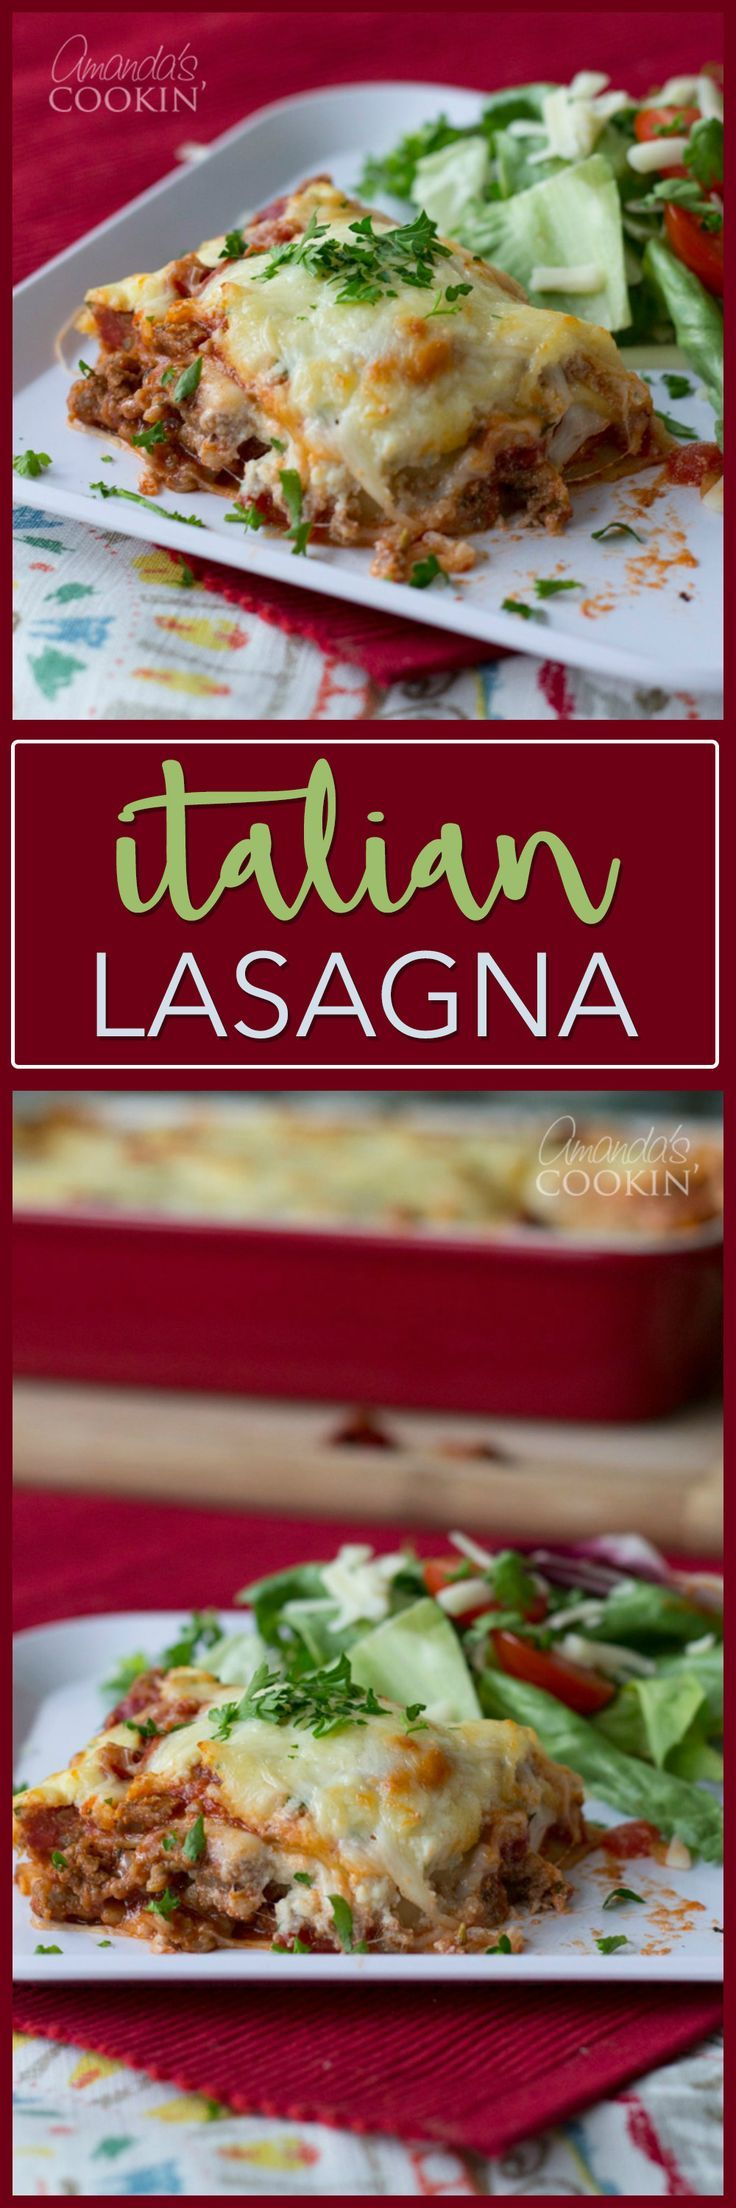 This Italian Lasagna Comes From The Back Of The Creamette